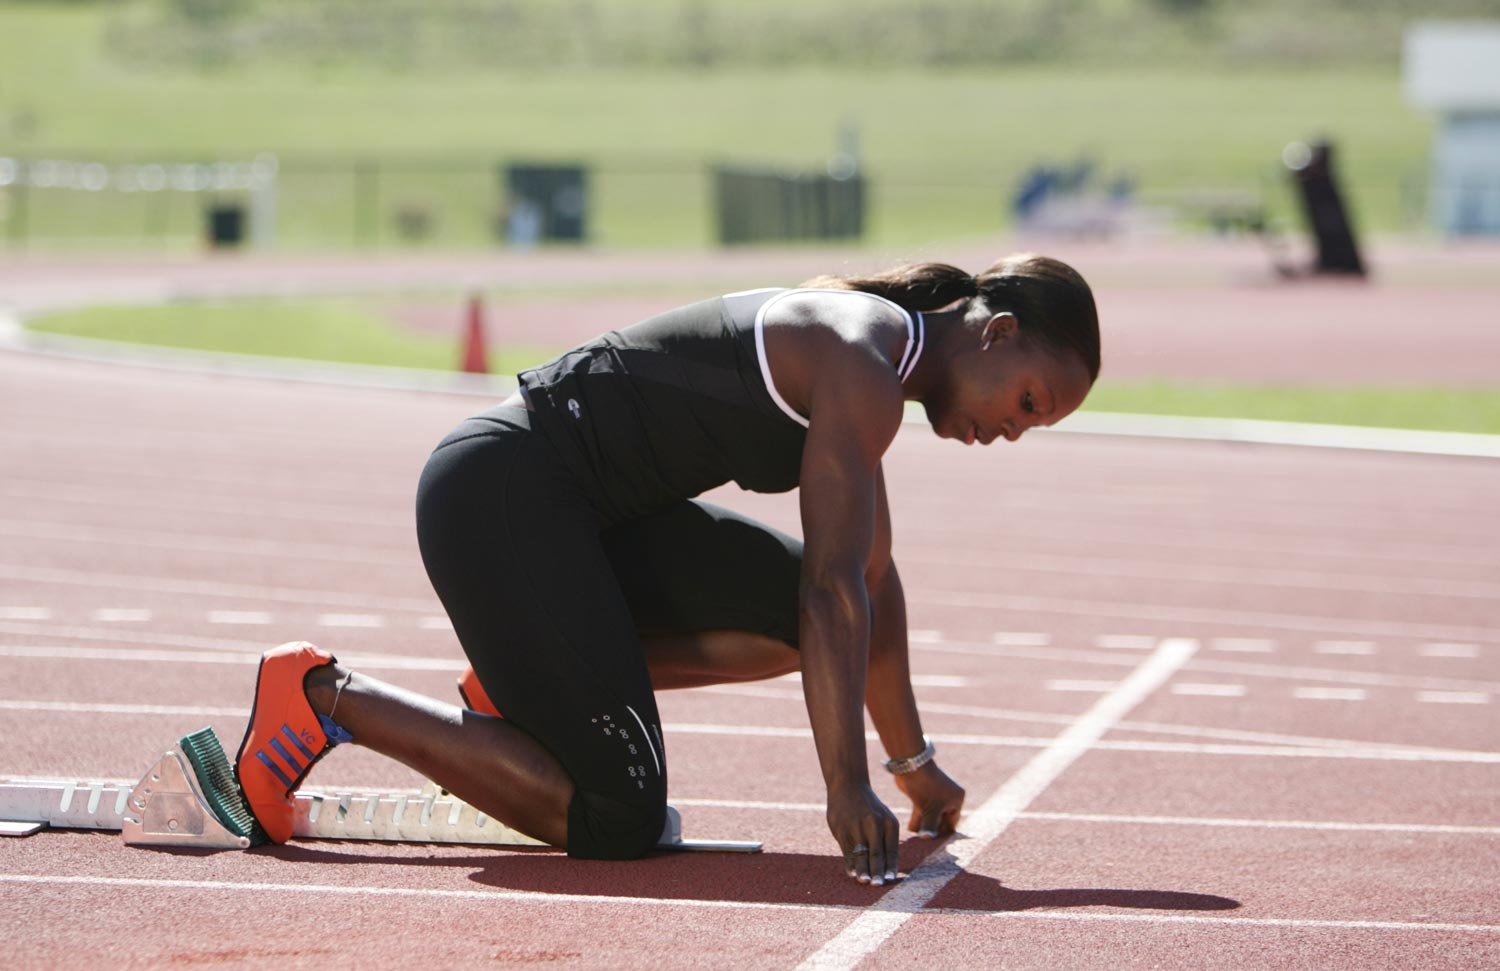 Jamaican track and field star and Olympic medalist Veronica Campbell-Brown training in Orlando, Florida. Photograph courtesy On Track Management